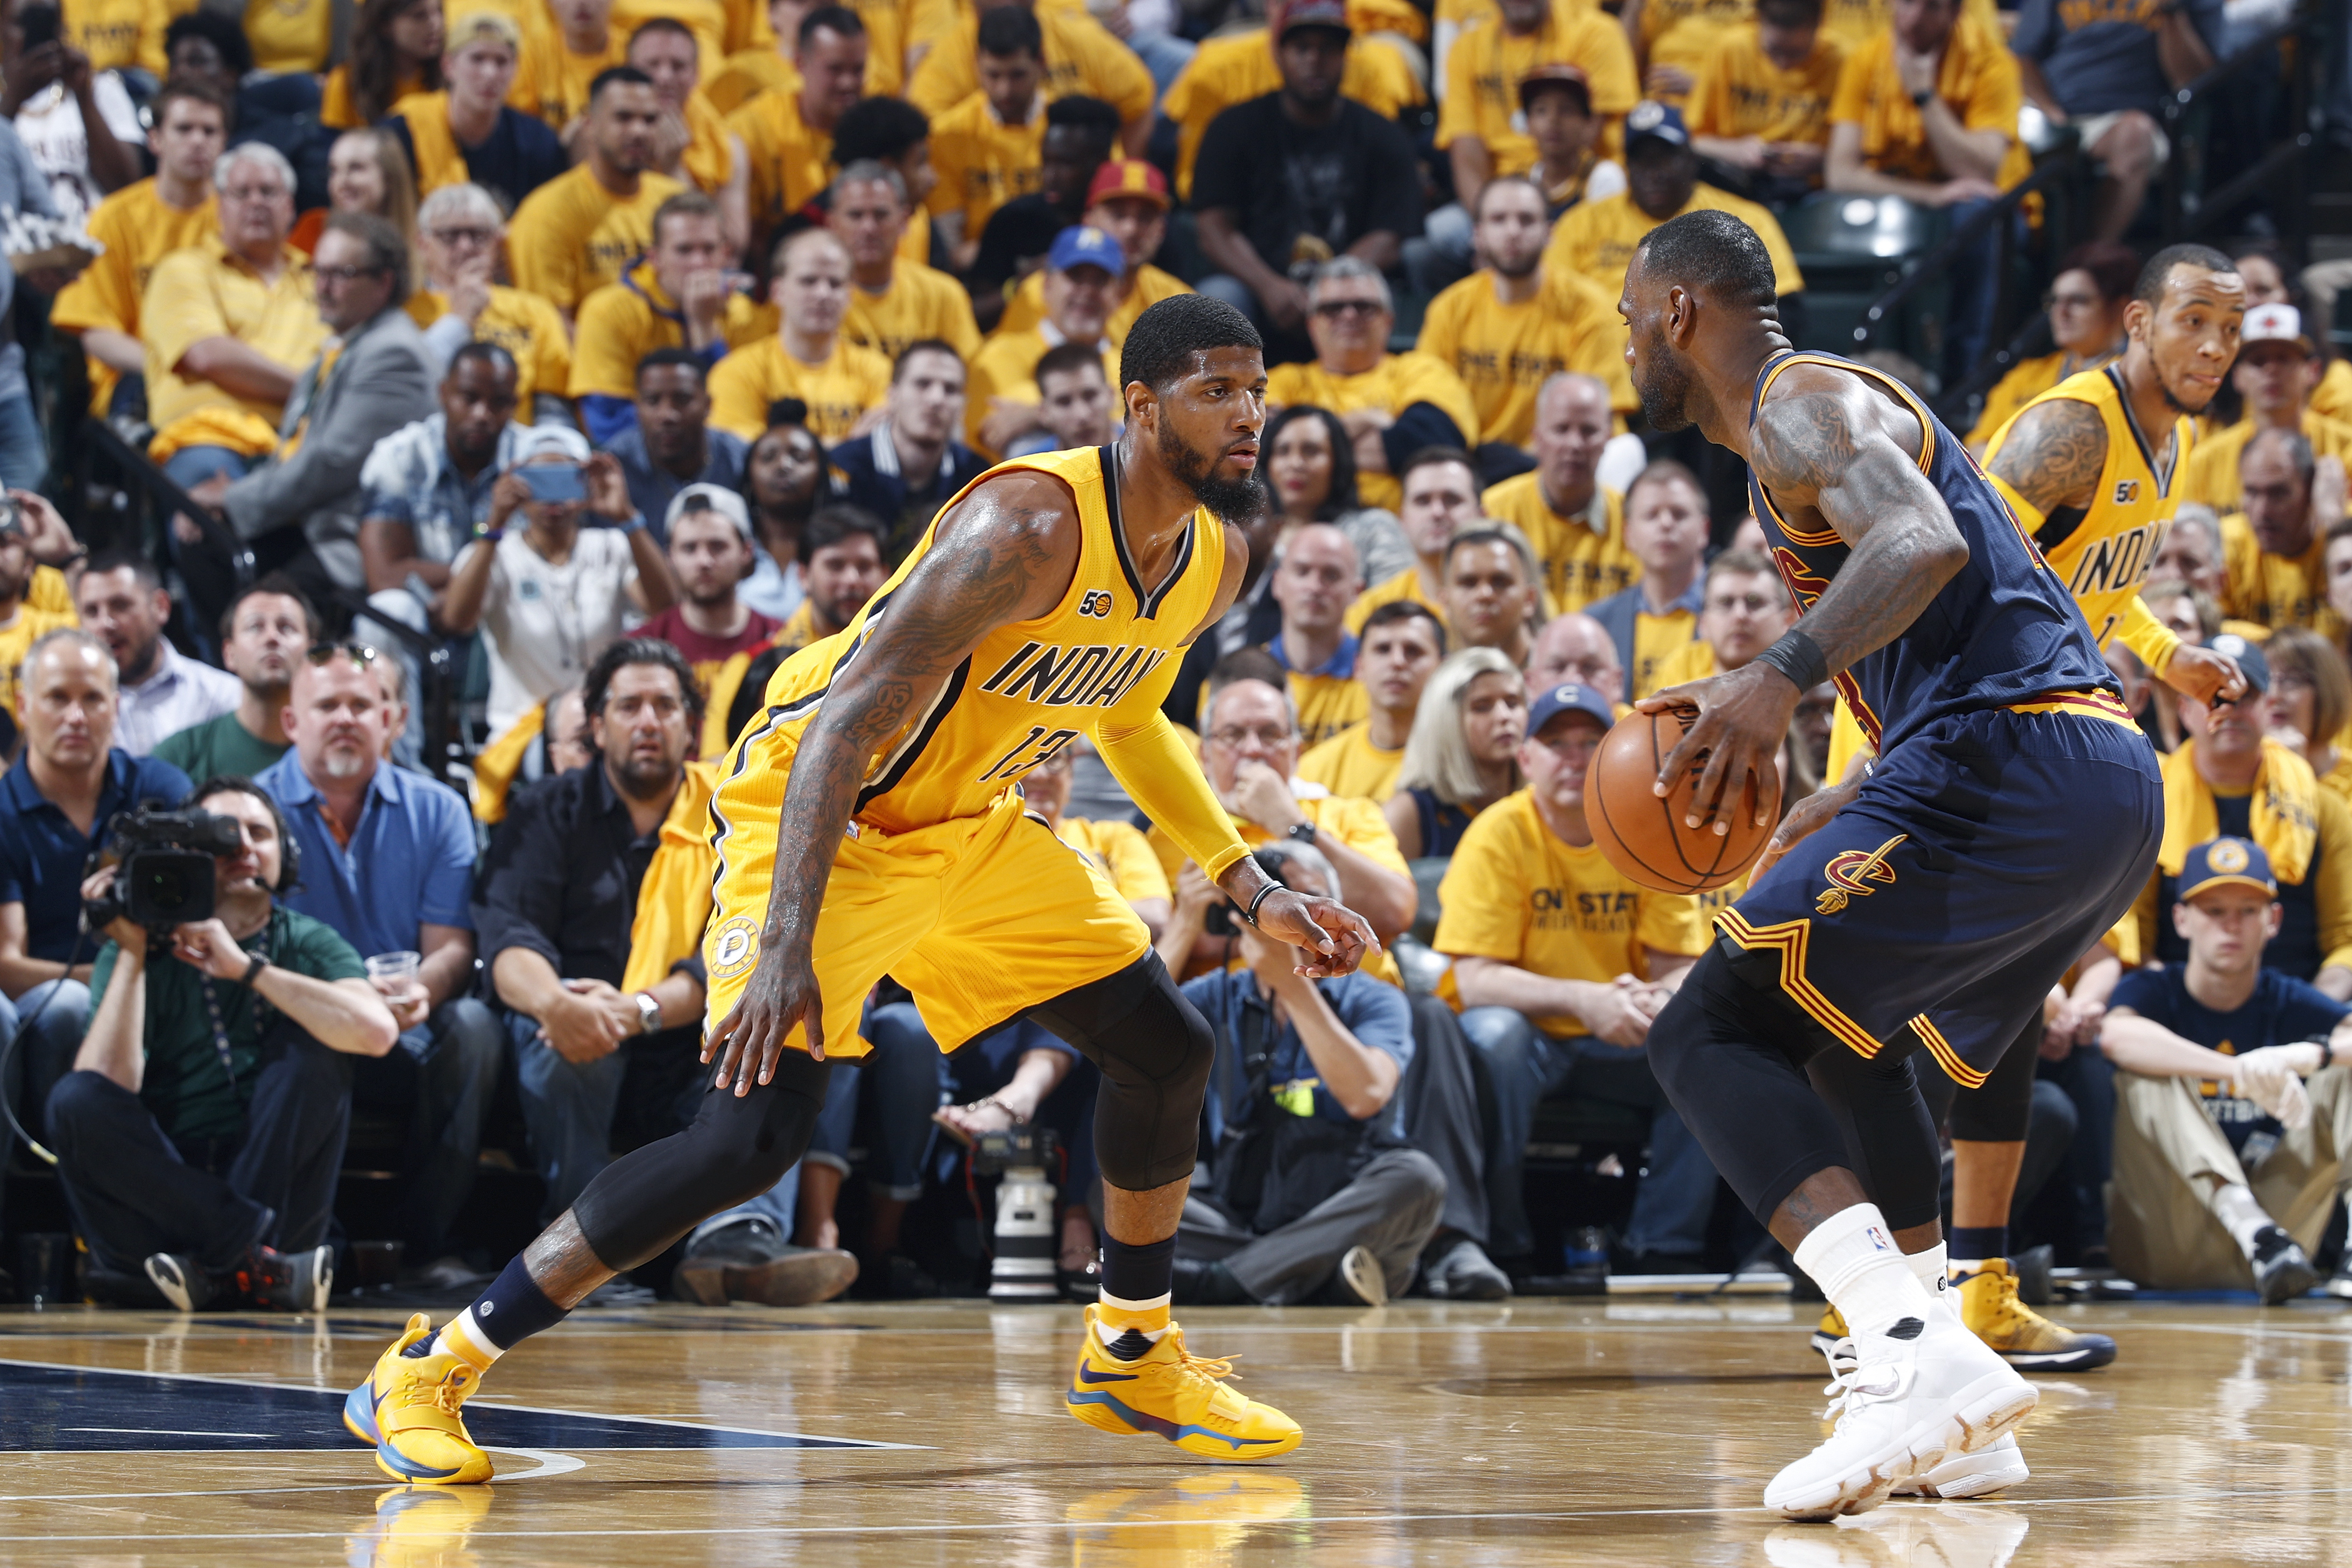 671497274-cleveland-cavaliers-v-indiana-pacers-game-three.jpg